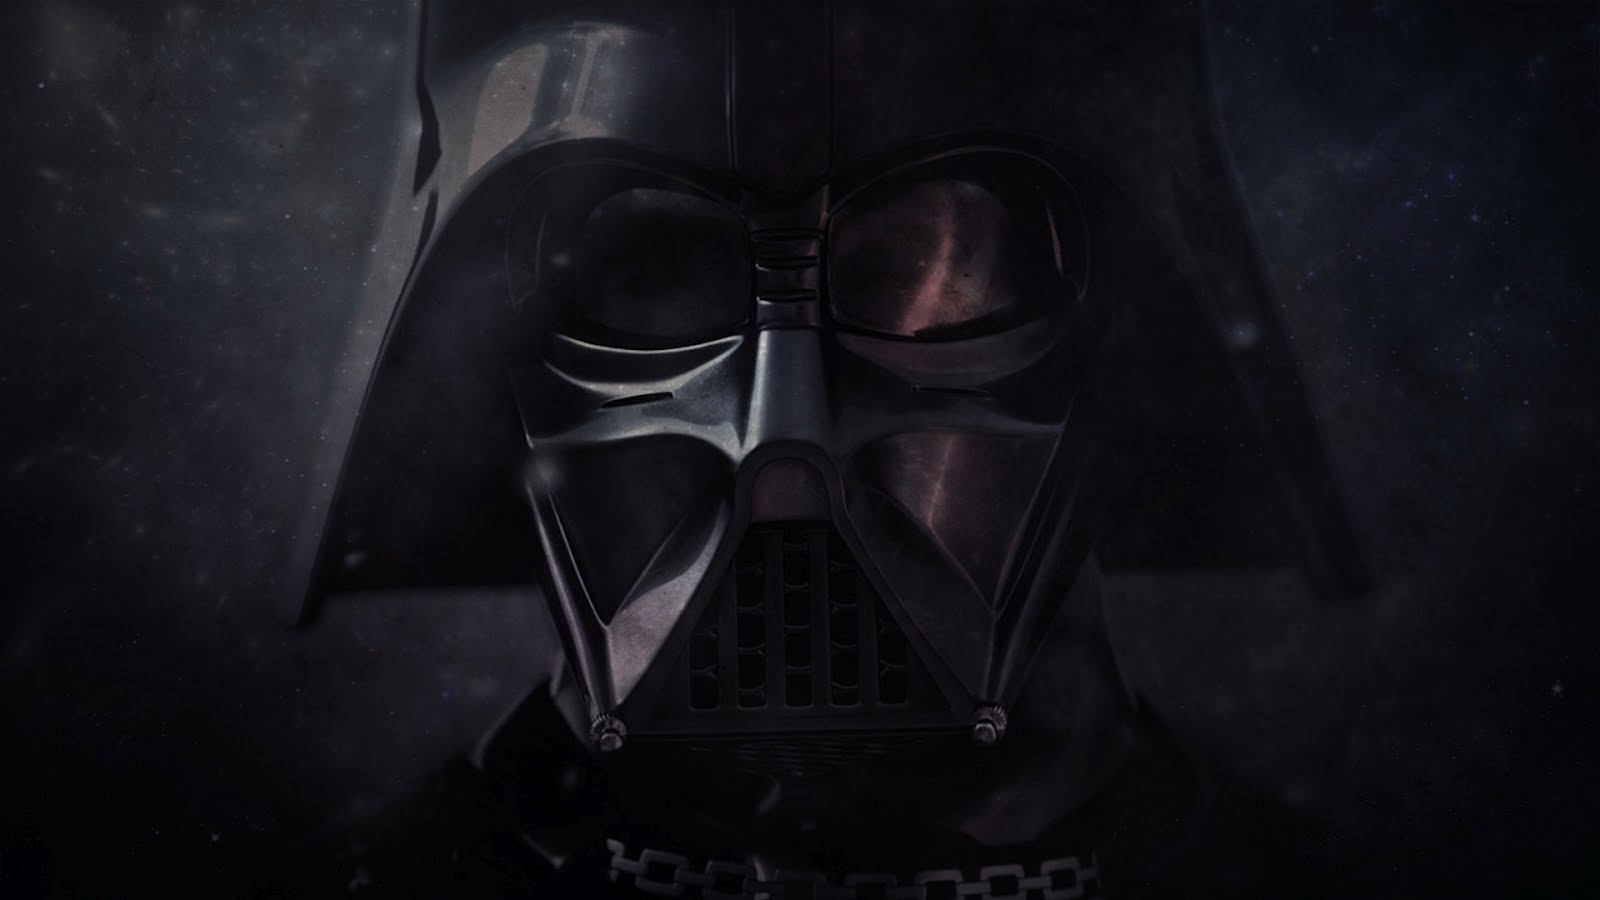 Ashley Wallpaper Vader Wallpaper Hd